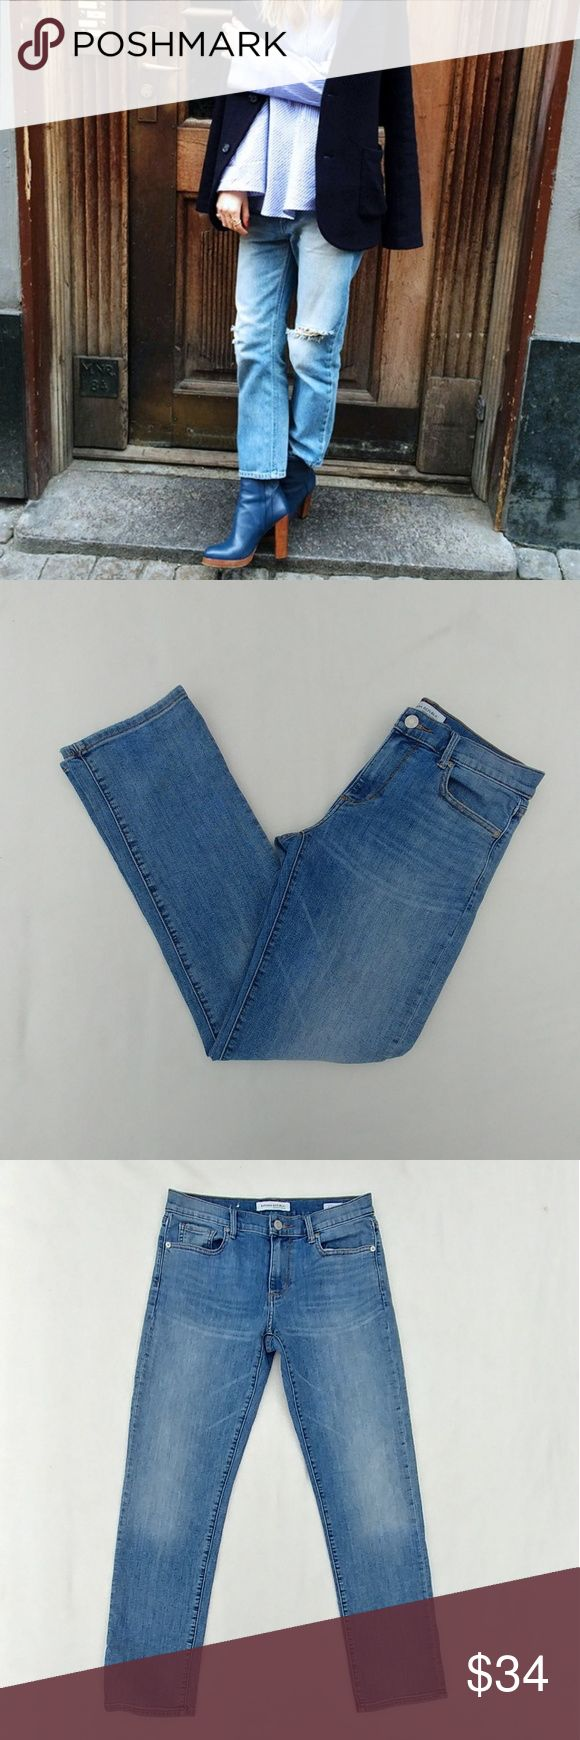 "Banana Republic Straight Leg Jeans Material: 93% cotton 5% polyester 2% elastane Condition: Pristine Waist: 14.5"" Inseam: 29"" Style: Straight Wash: Light  ⚫NOTE⚫ Super cute everyday jeans. Do what you want to these; cut them up, dye them, or leave them alone. The perfect straight leg jean! No stains, rips, or holes.   👉Stock photos are for wearing suggestion only. NOT ACTUAL PANTS. Banana Republic Jeans Straight Leg"